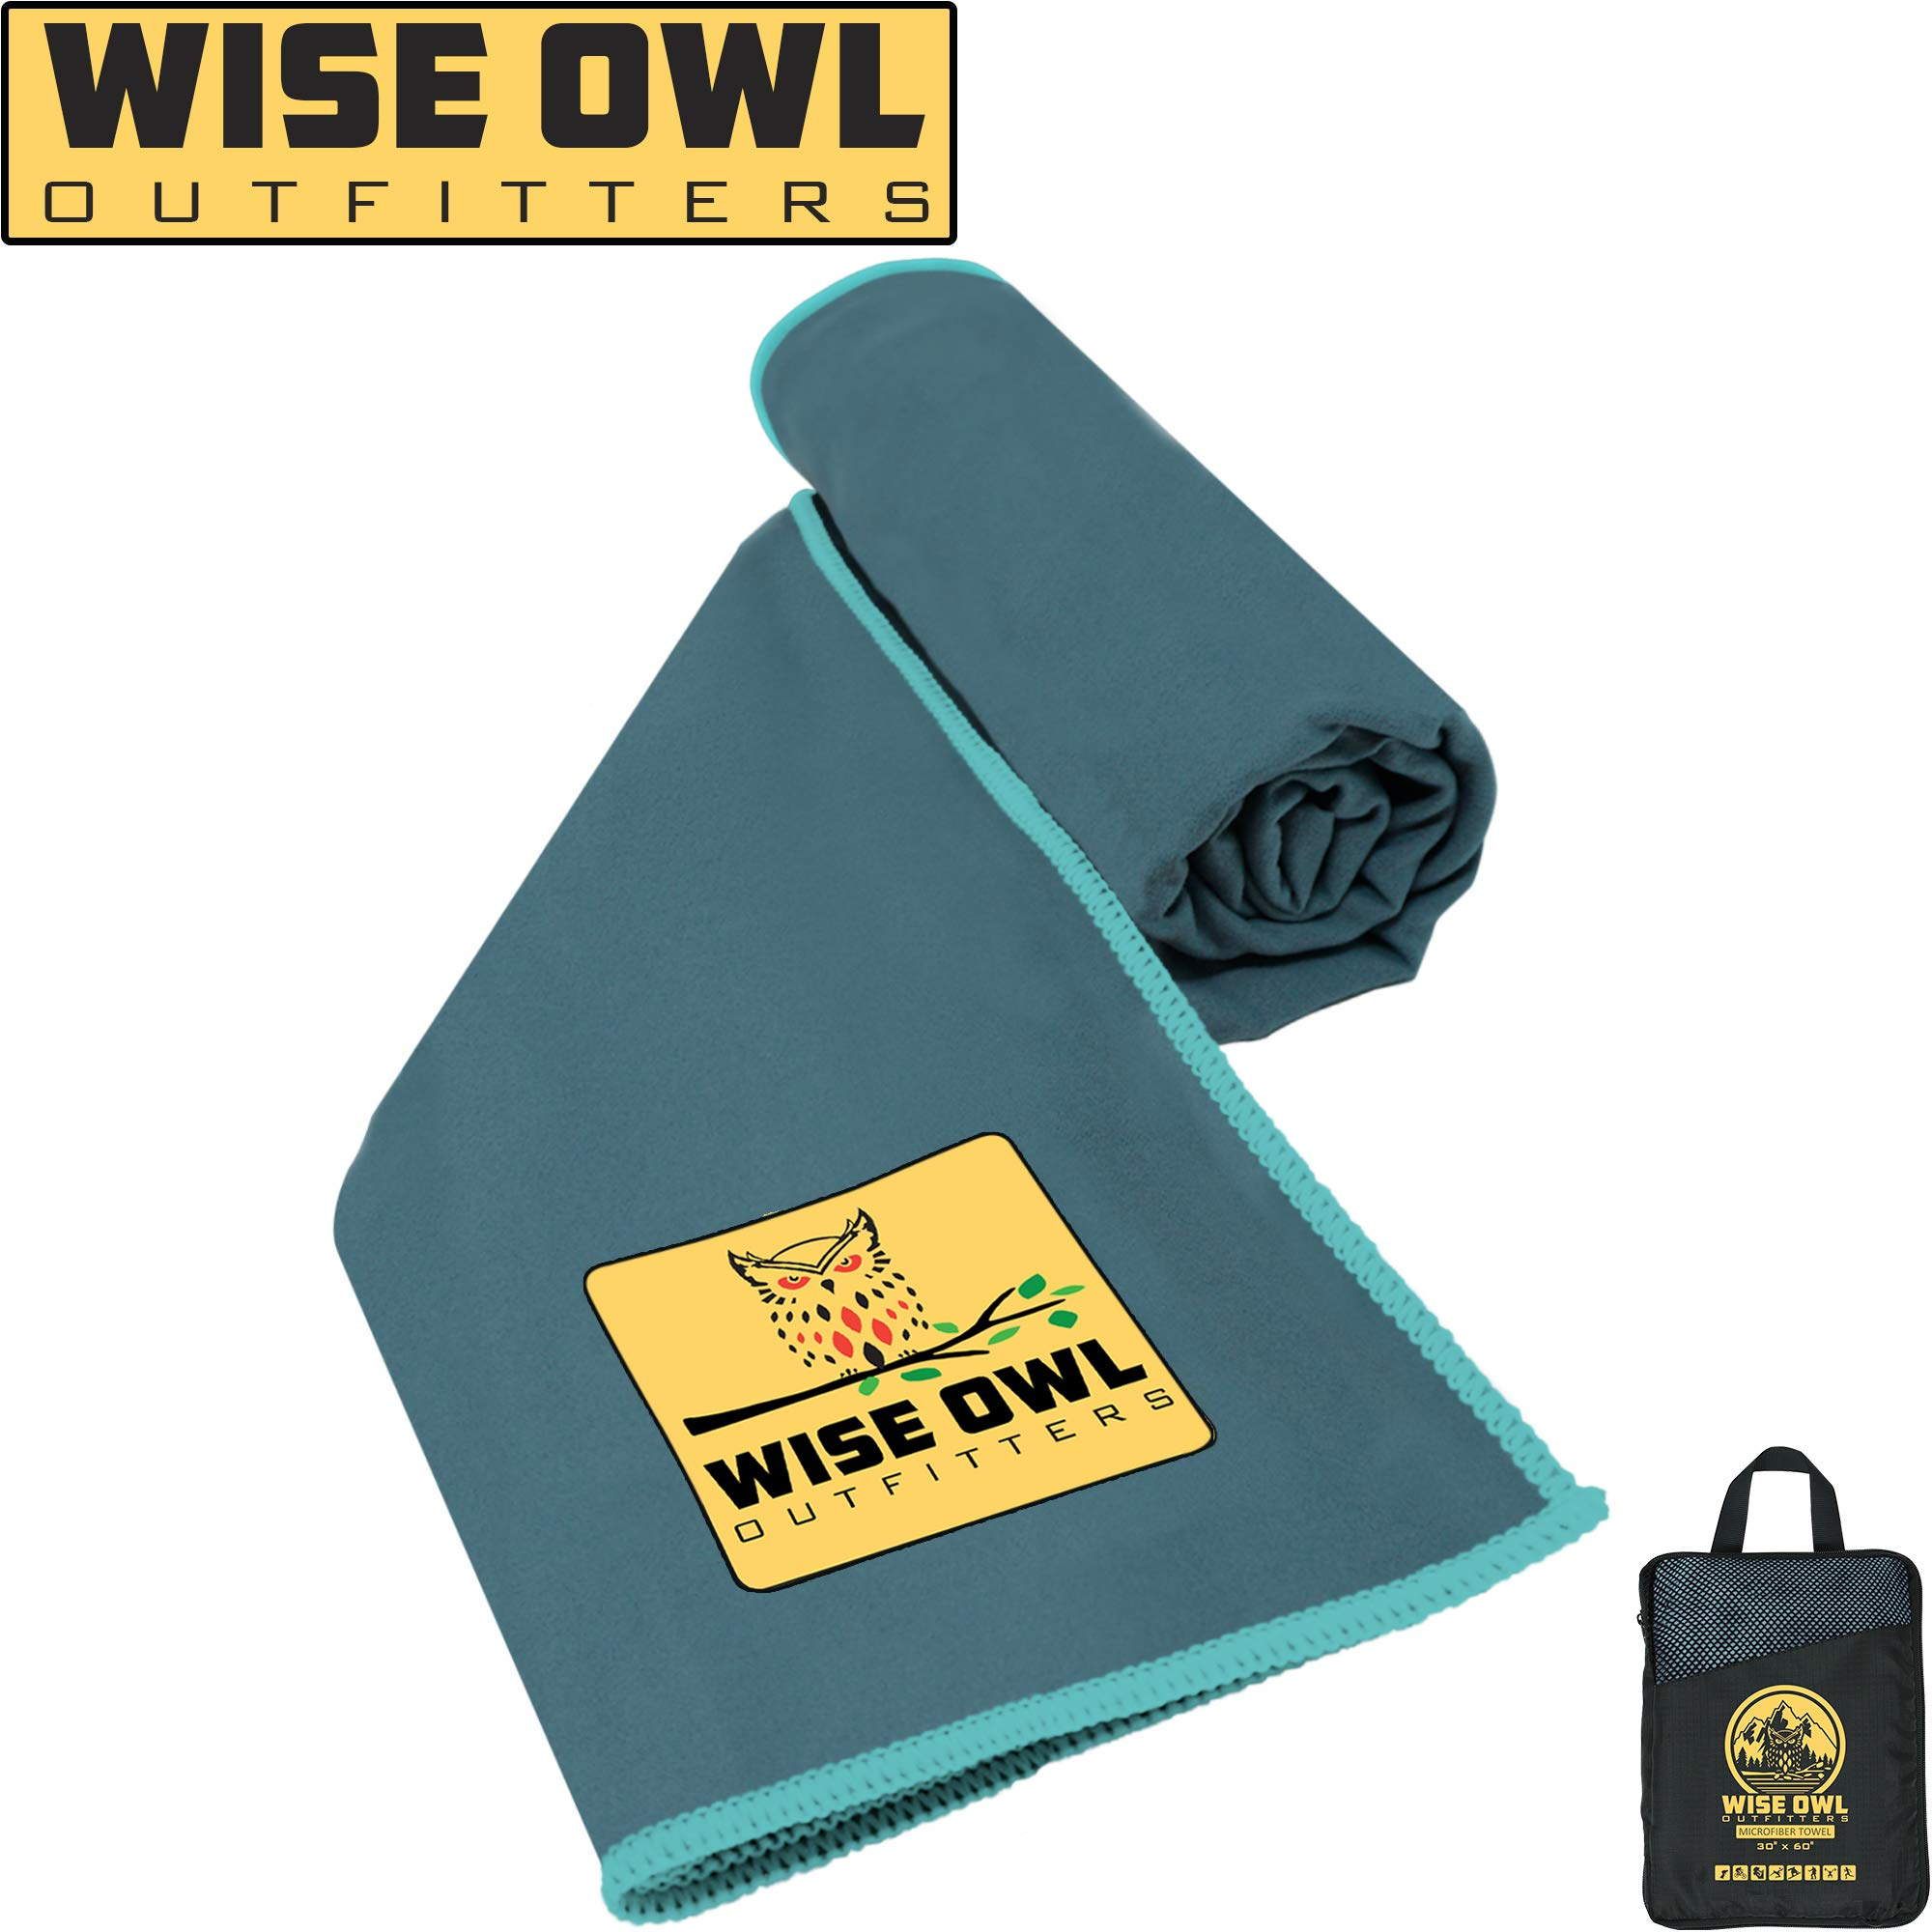 88c8b35476 Wise Owl Outfitters Camping Towel - Ultra Soft Compact Quick Dry Microfiber  Best Fitness Beach Hiking Yoga Travel Sports Backpacking   The Gym Fast  Drying ...